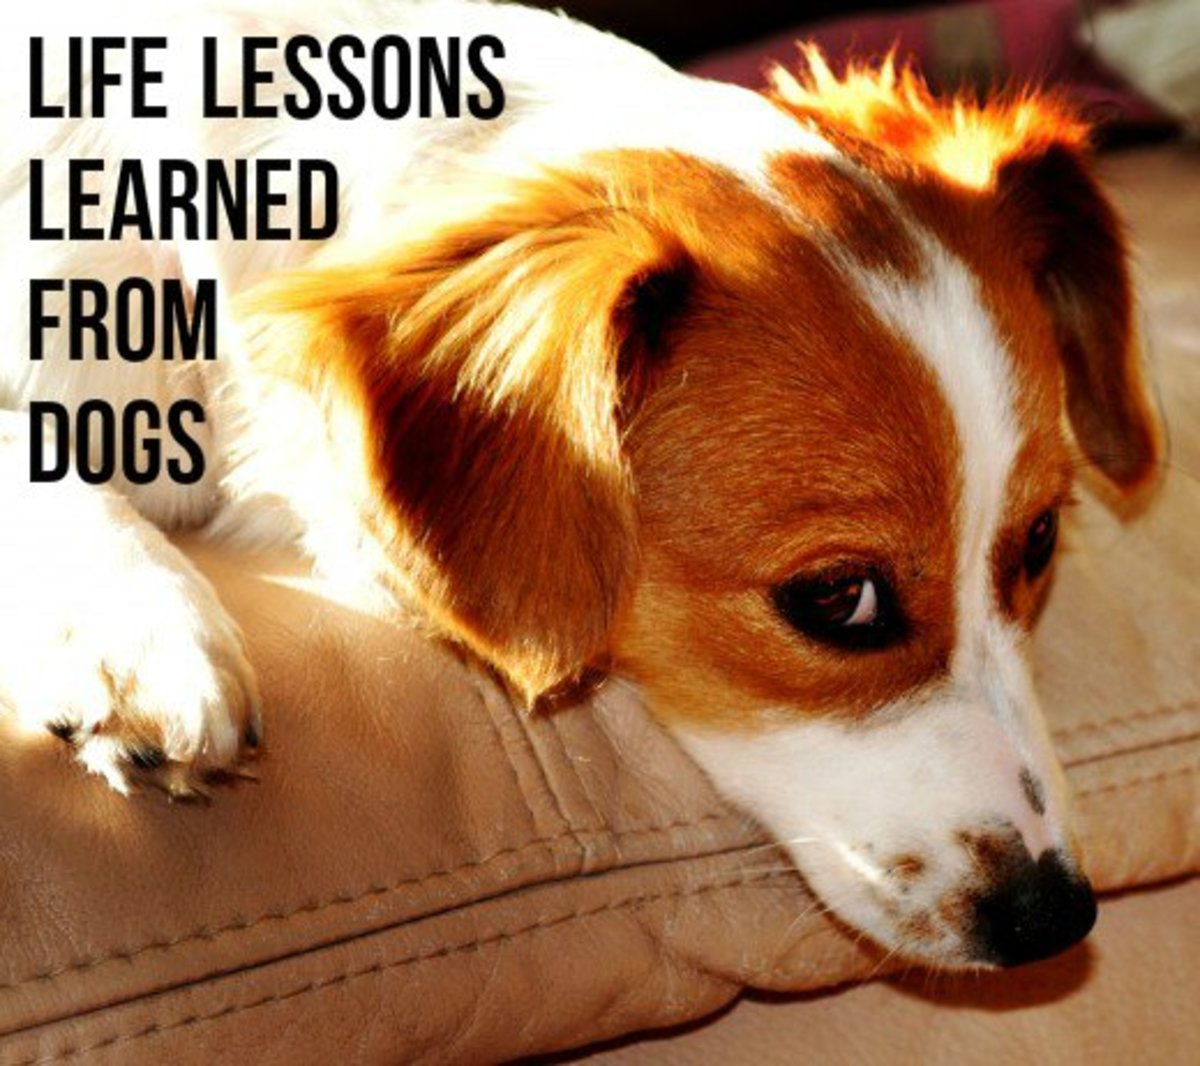 5 Lessons Dogs Can Teach Us About Being Human